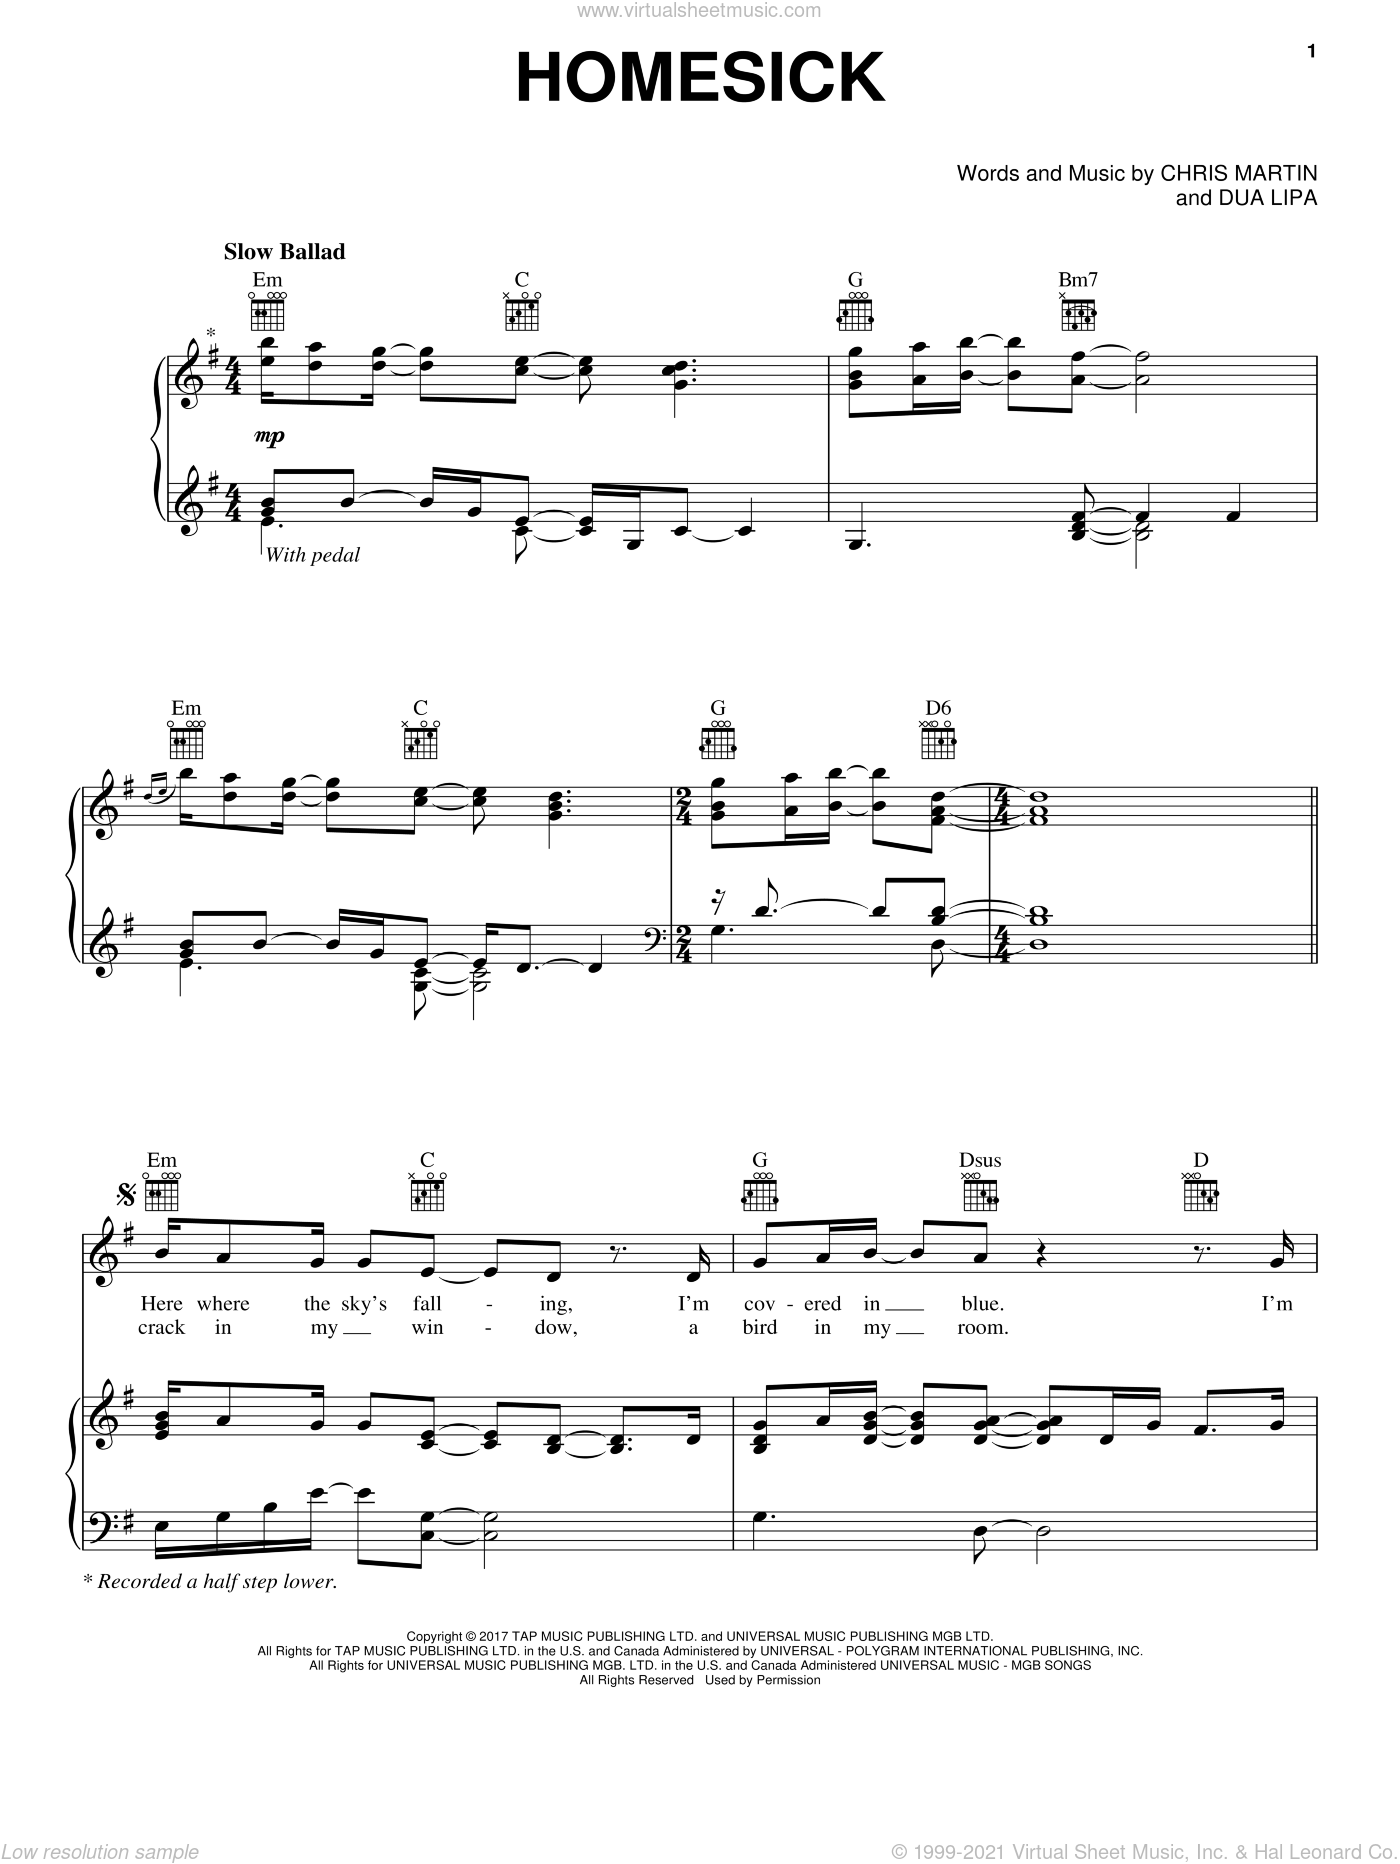 Homesick sheet music for voice, piano or guitar by Dua Lipa feat. Chris Martin, Chris Martin and Dua Lipa, intermediate skill level